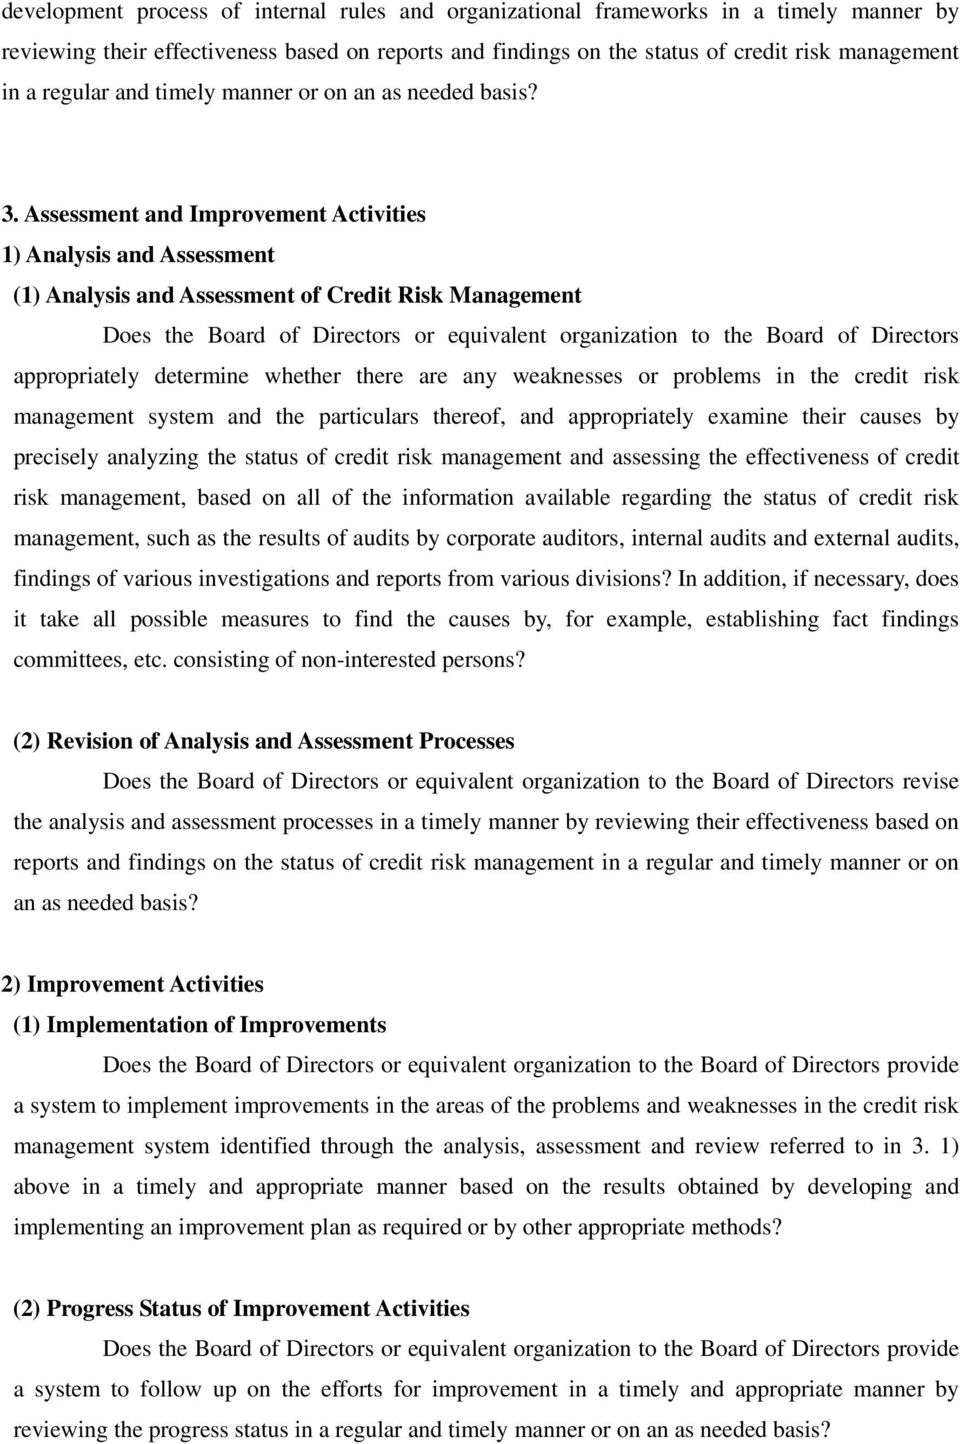 Assessment and Improvement Activities 1) Analysis and Assessment (1) Analysis and Assessment of Credit Risk Management Does the Board of Directors or equivalent organization to the Board of Directors